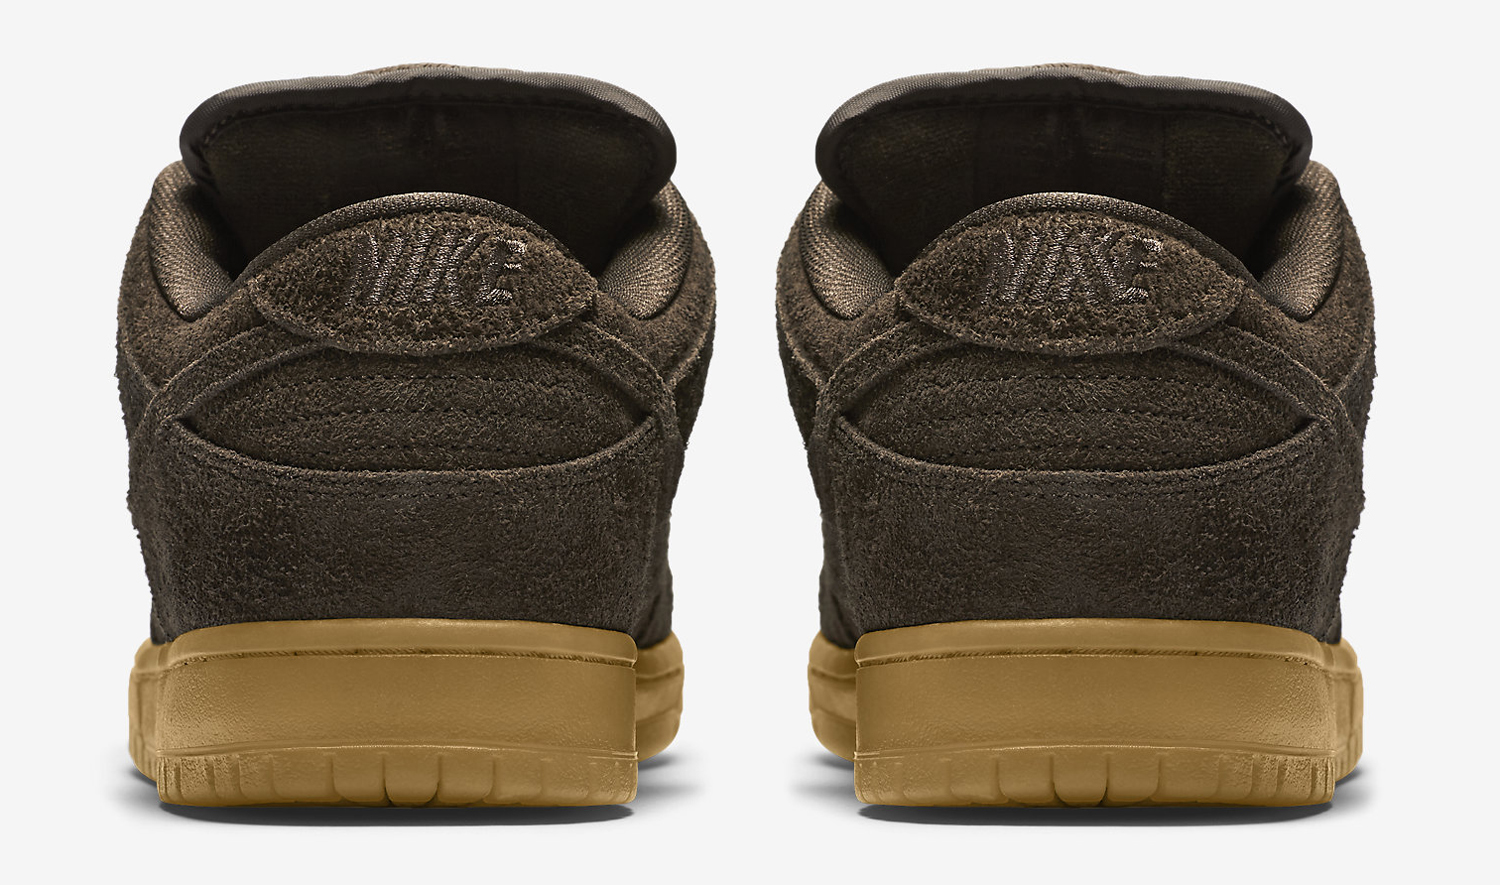 save off b8310 e44f4 Bigfoot Has His Own Nike Shoe. A Dunk Low ...